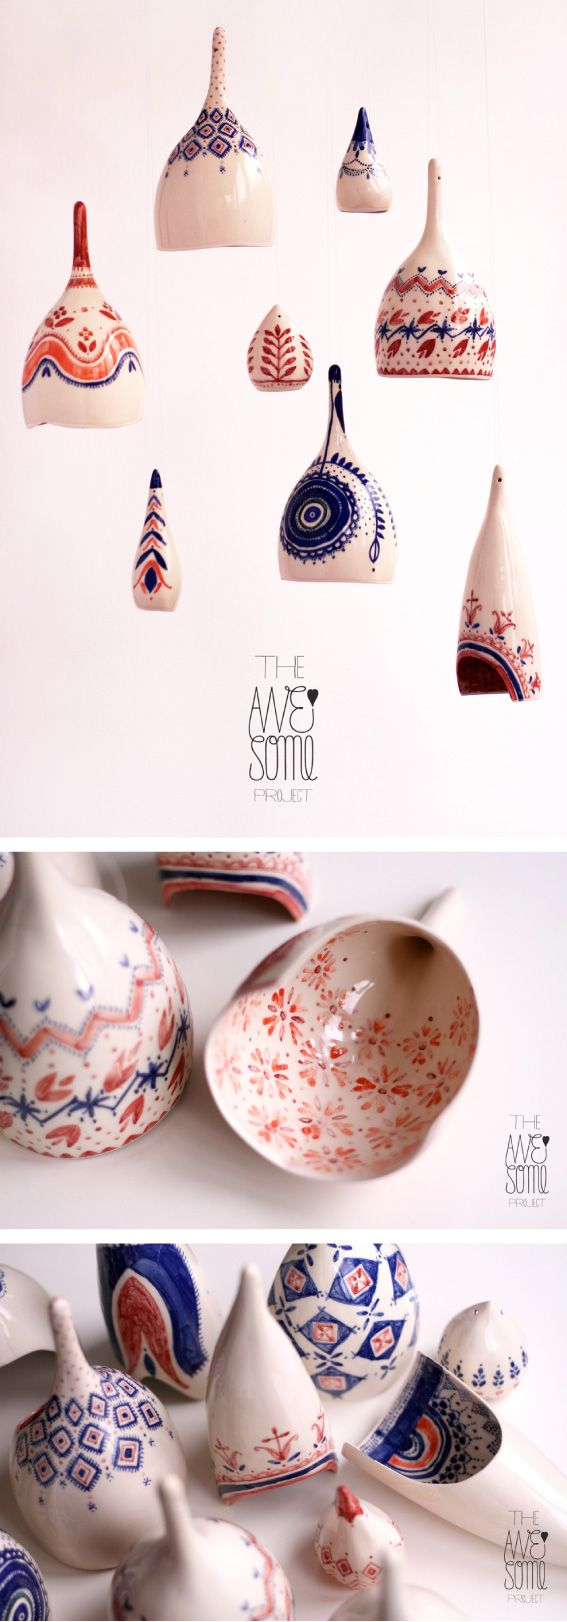 The Awesome Project - porcelain light fixtures